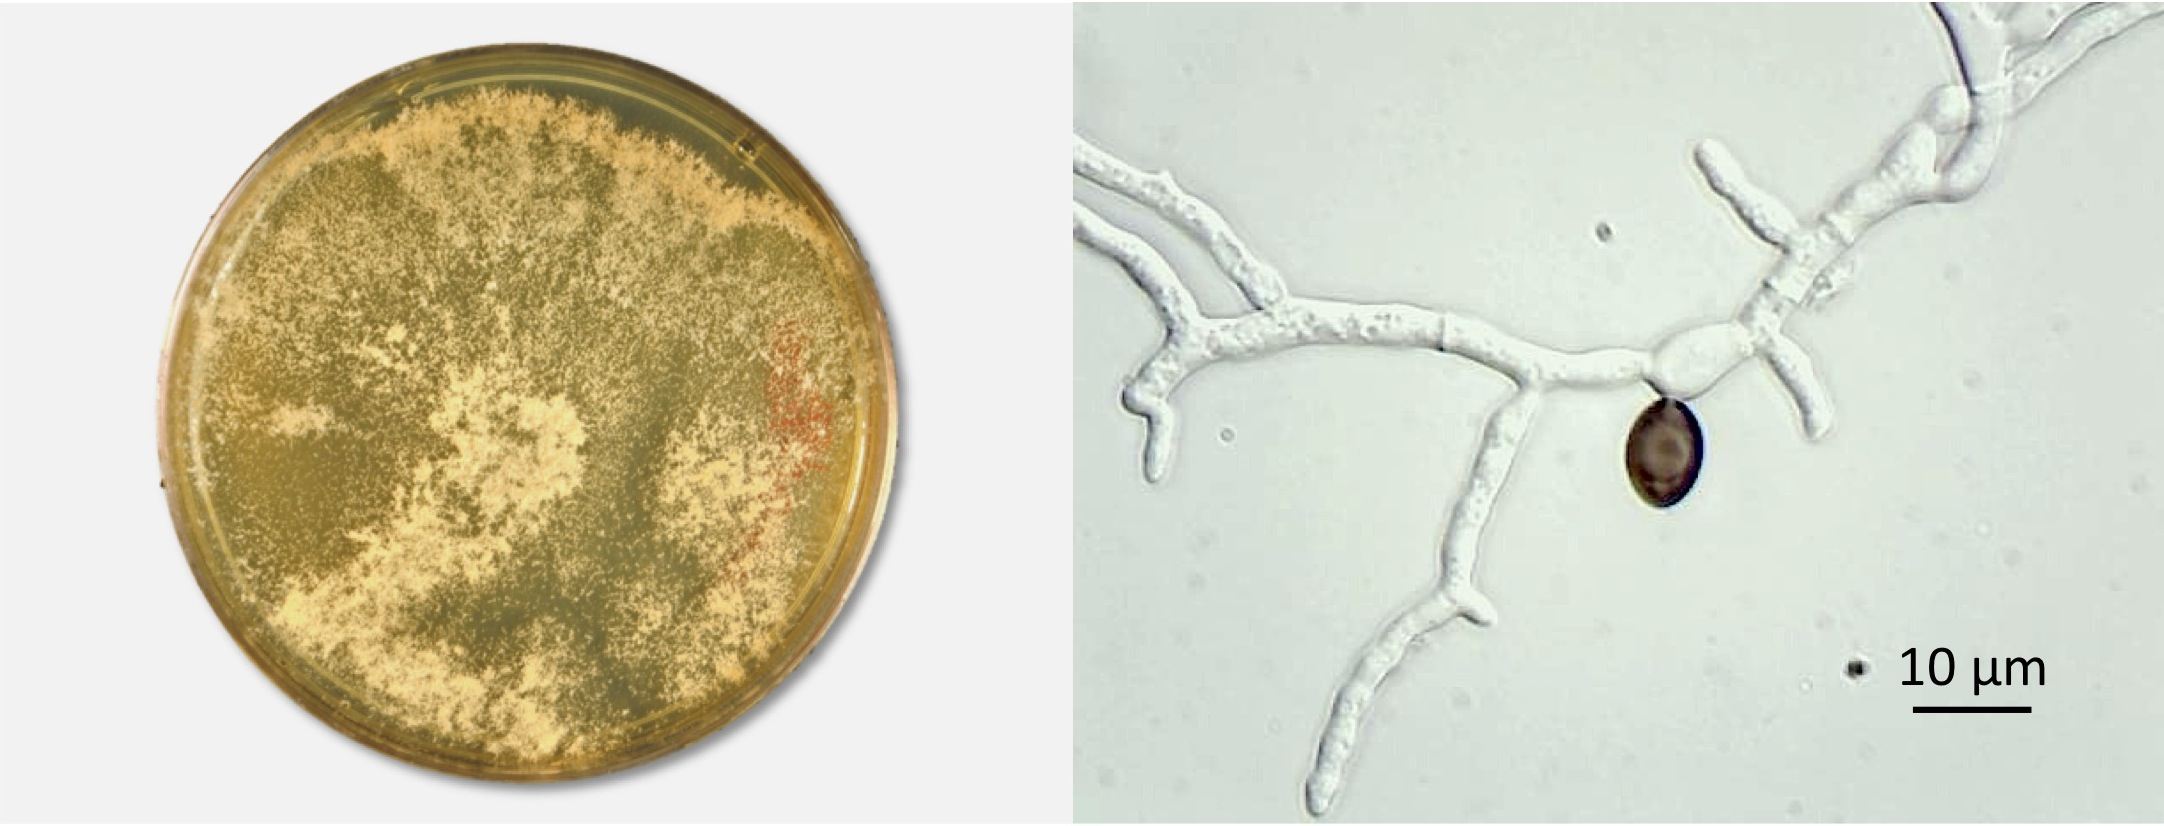 Conidiating colony on MEA and germinating ascopore. Photos by Don Natvig and Miriam Hutchinson